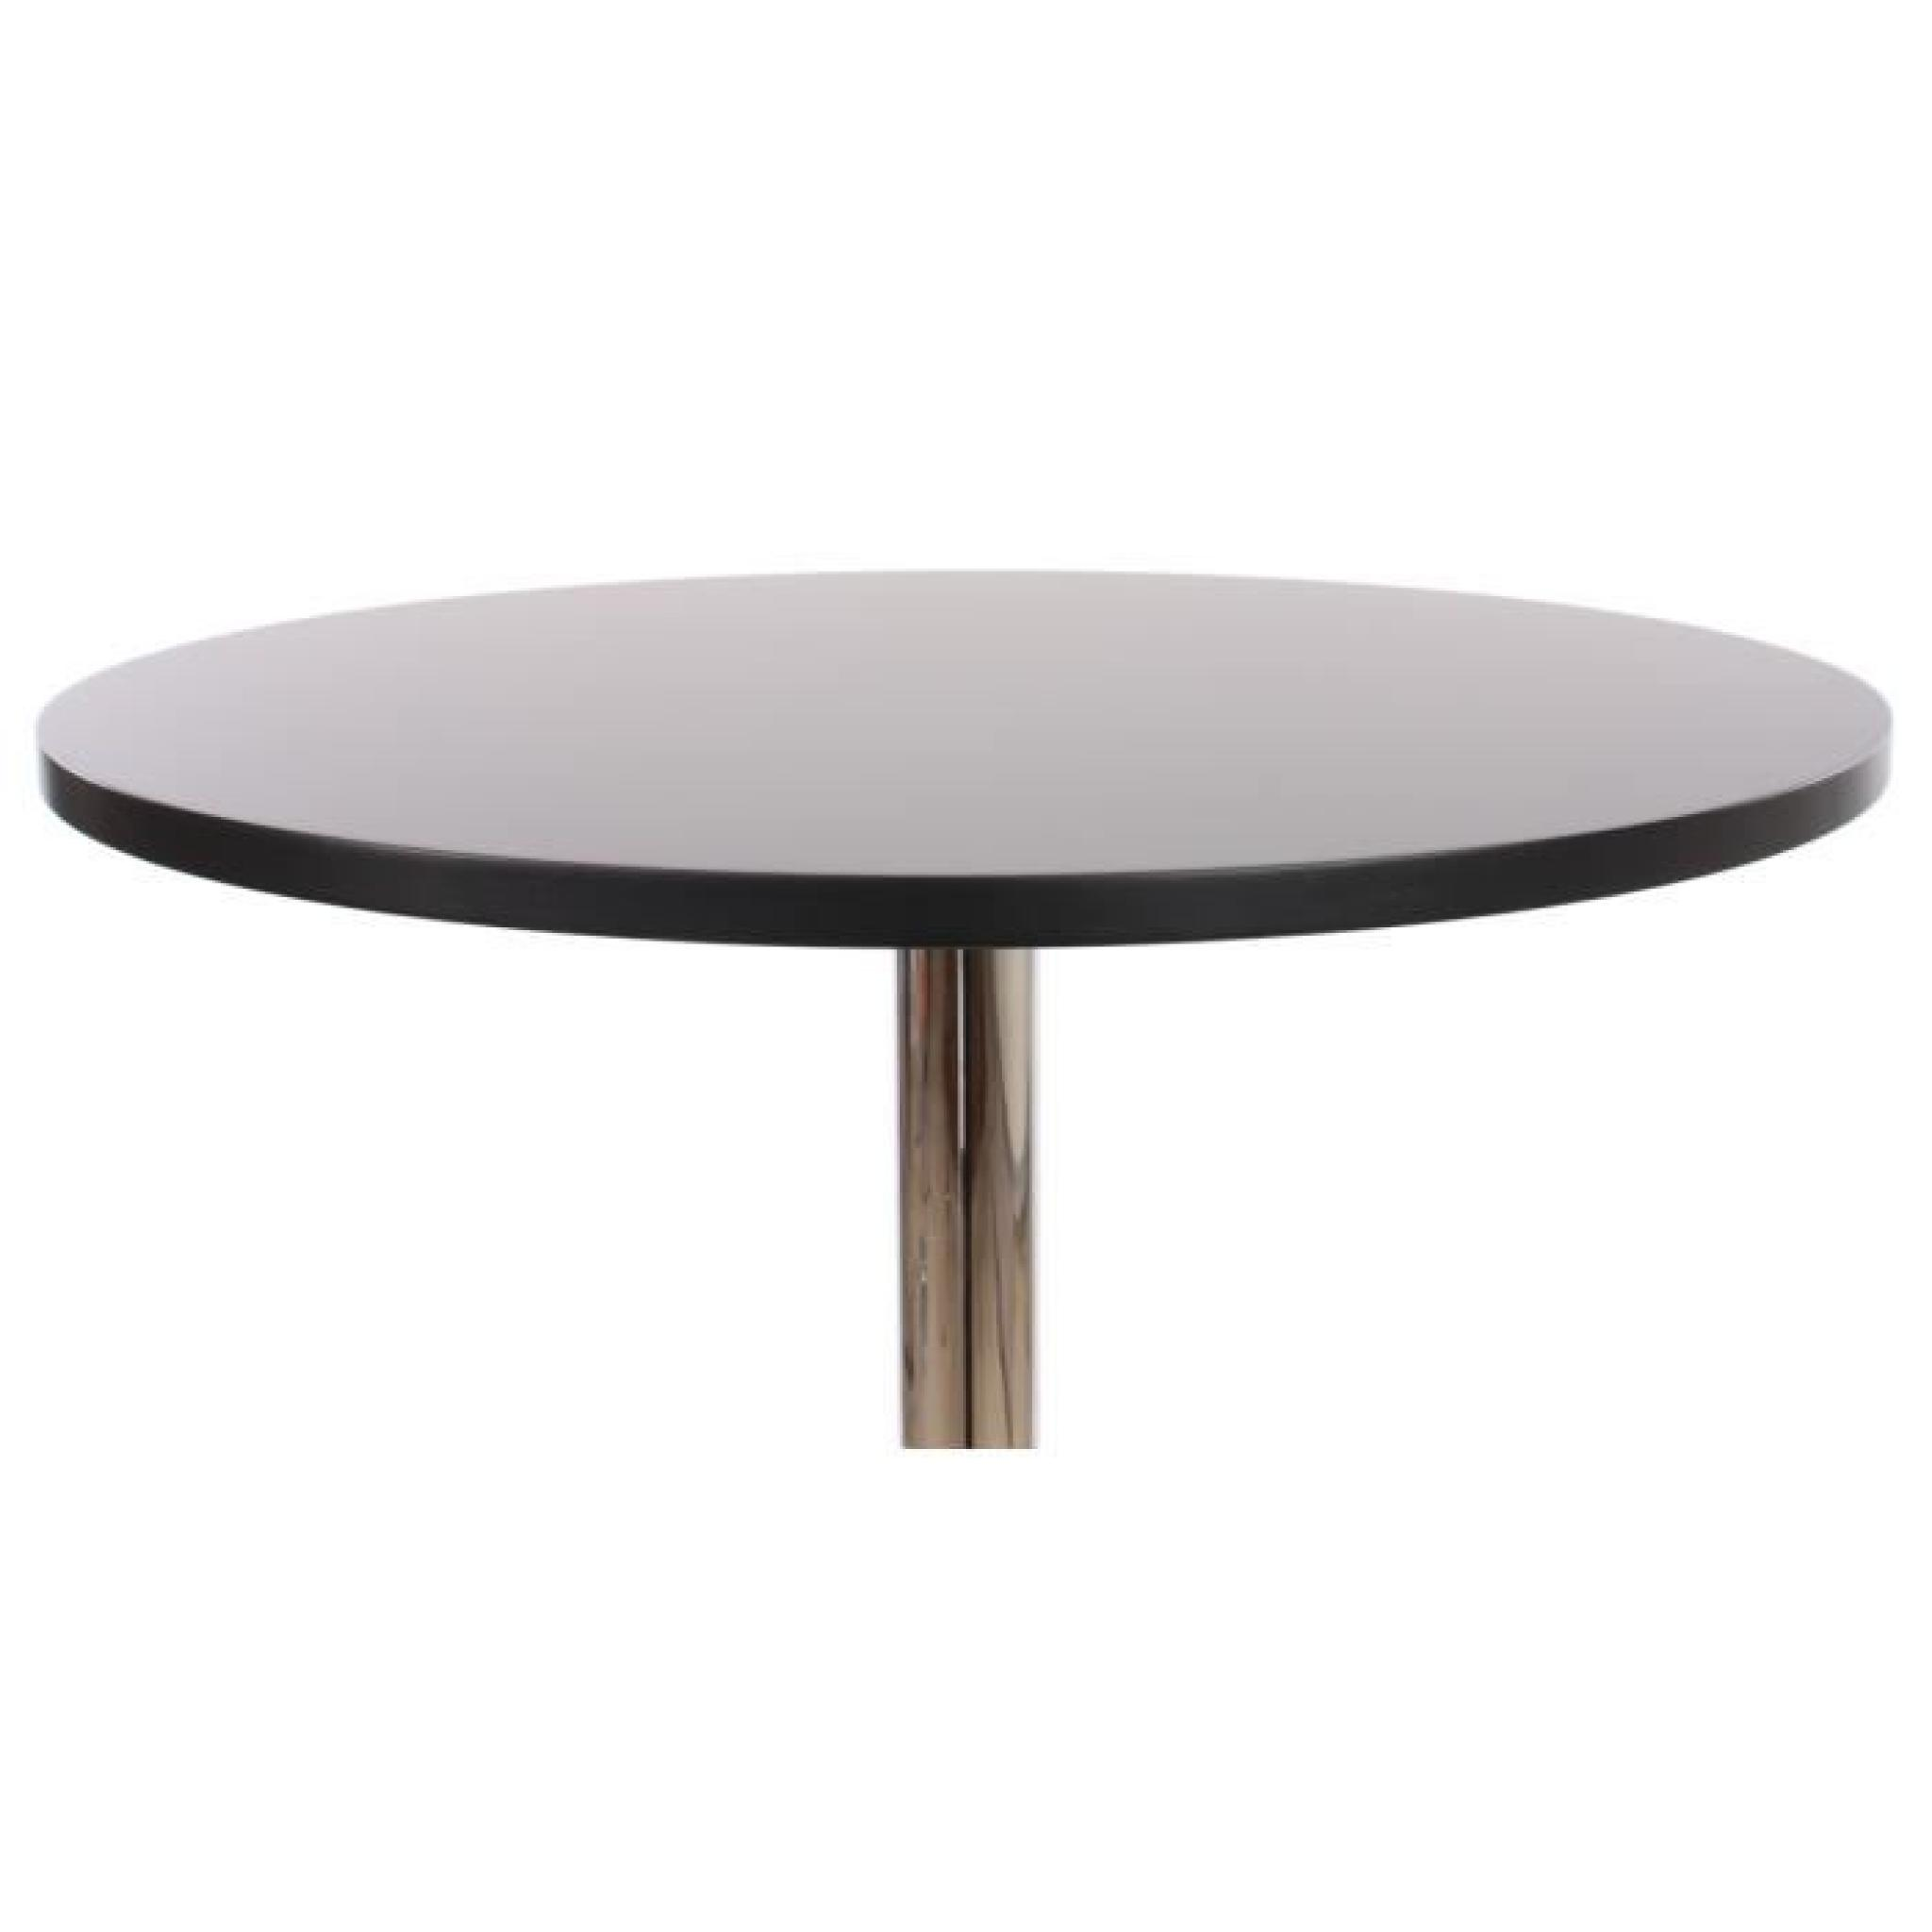 Table de bar table haute bari ronde avec repose pied for Table a manger ronde pas cher